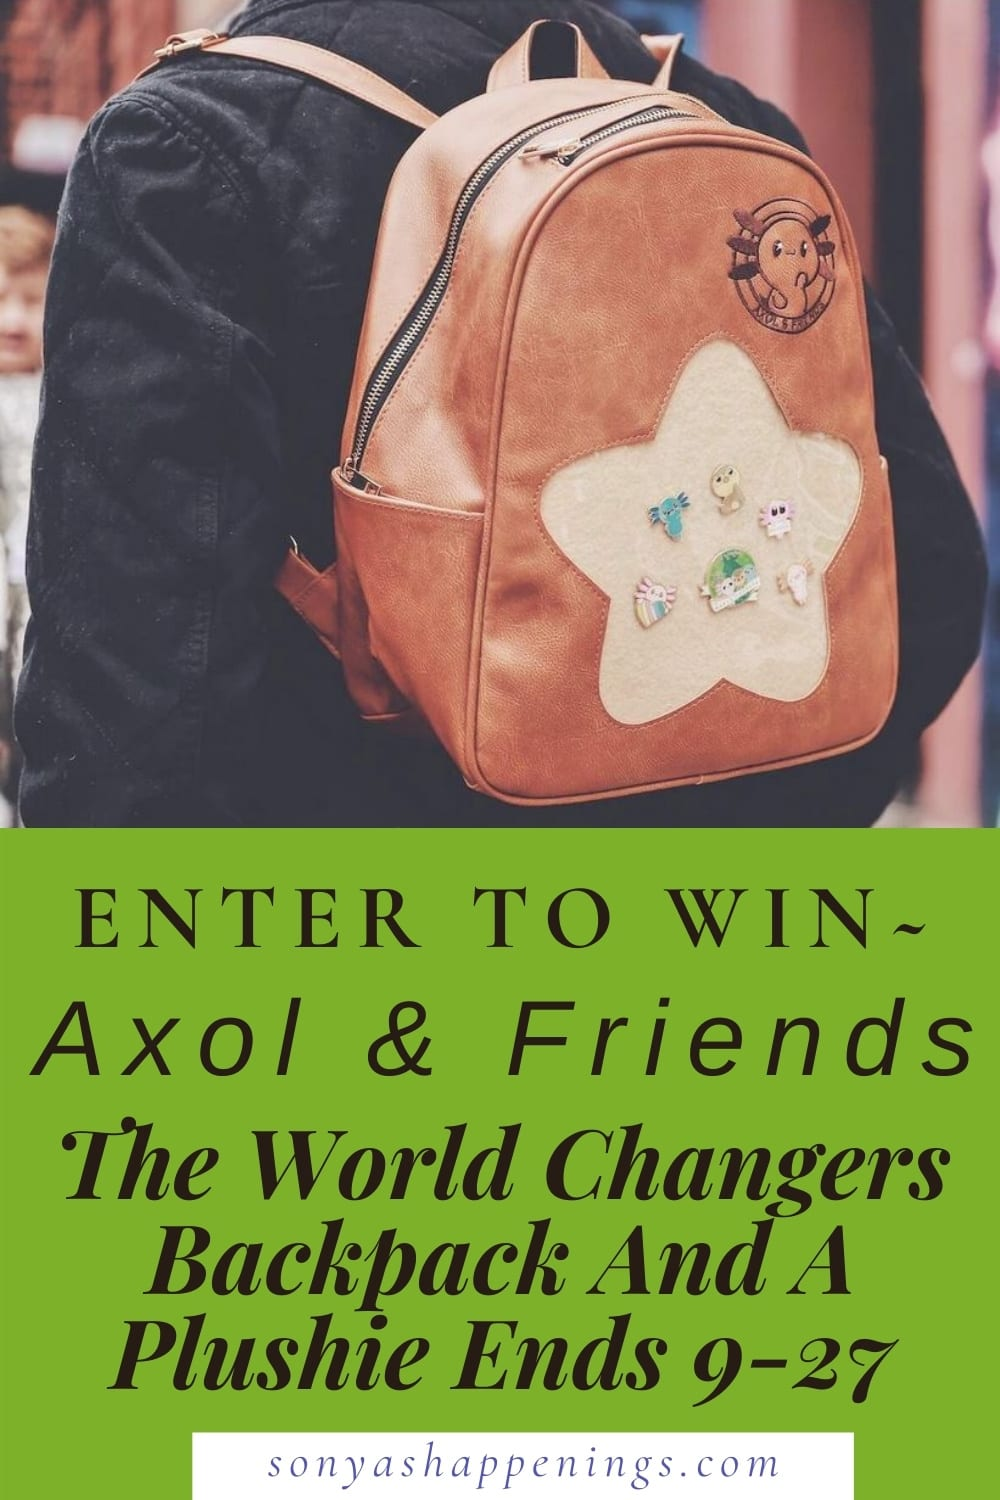 Axol & Friend\'s The World Changer Backpack- I LOVE it and you NEED it! Giveaway Too! Ends 9-27